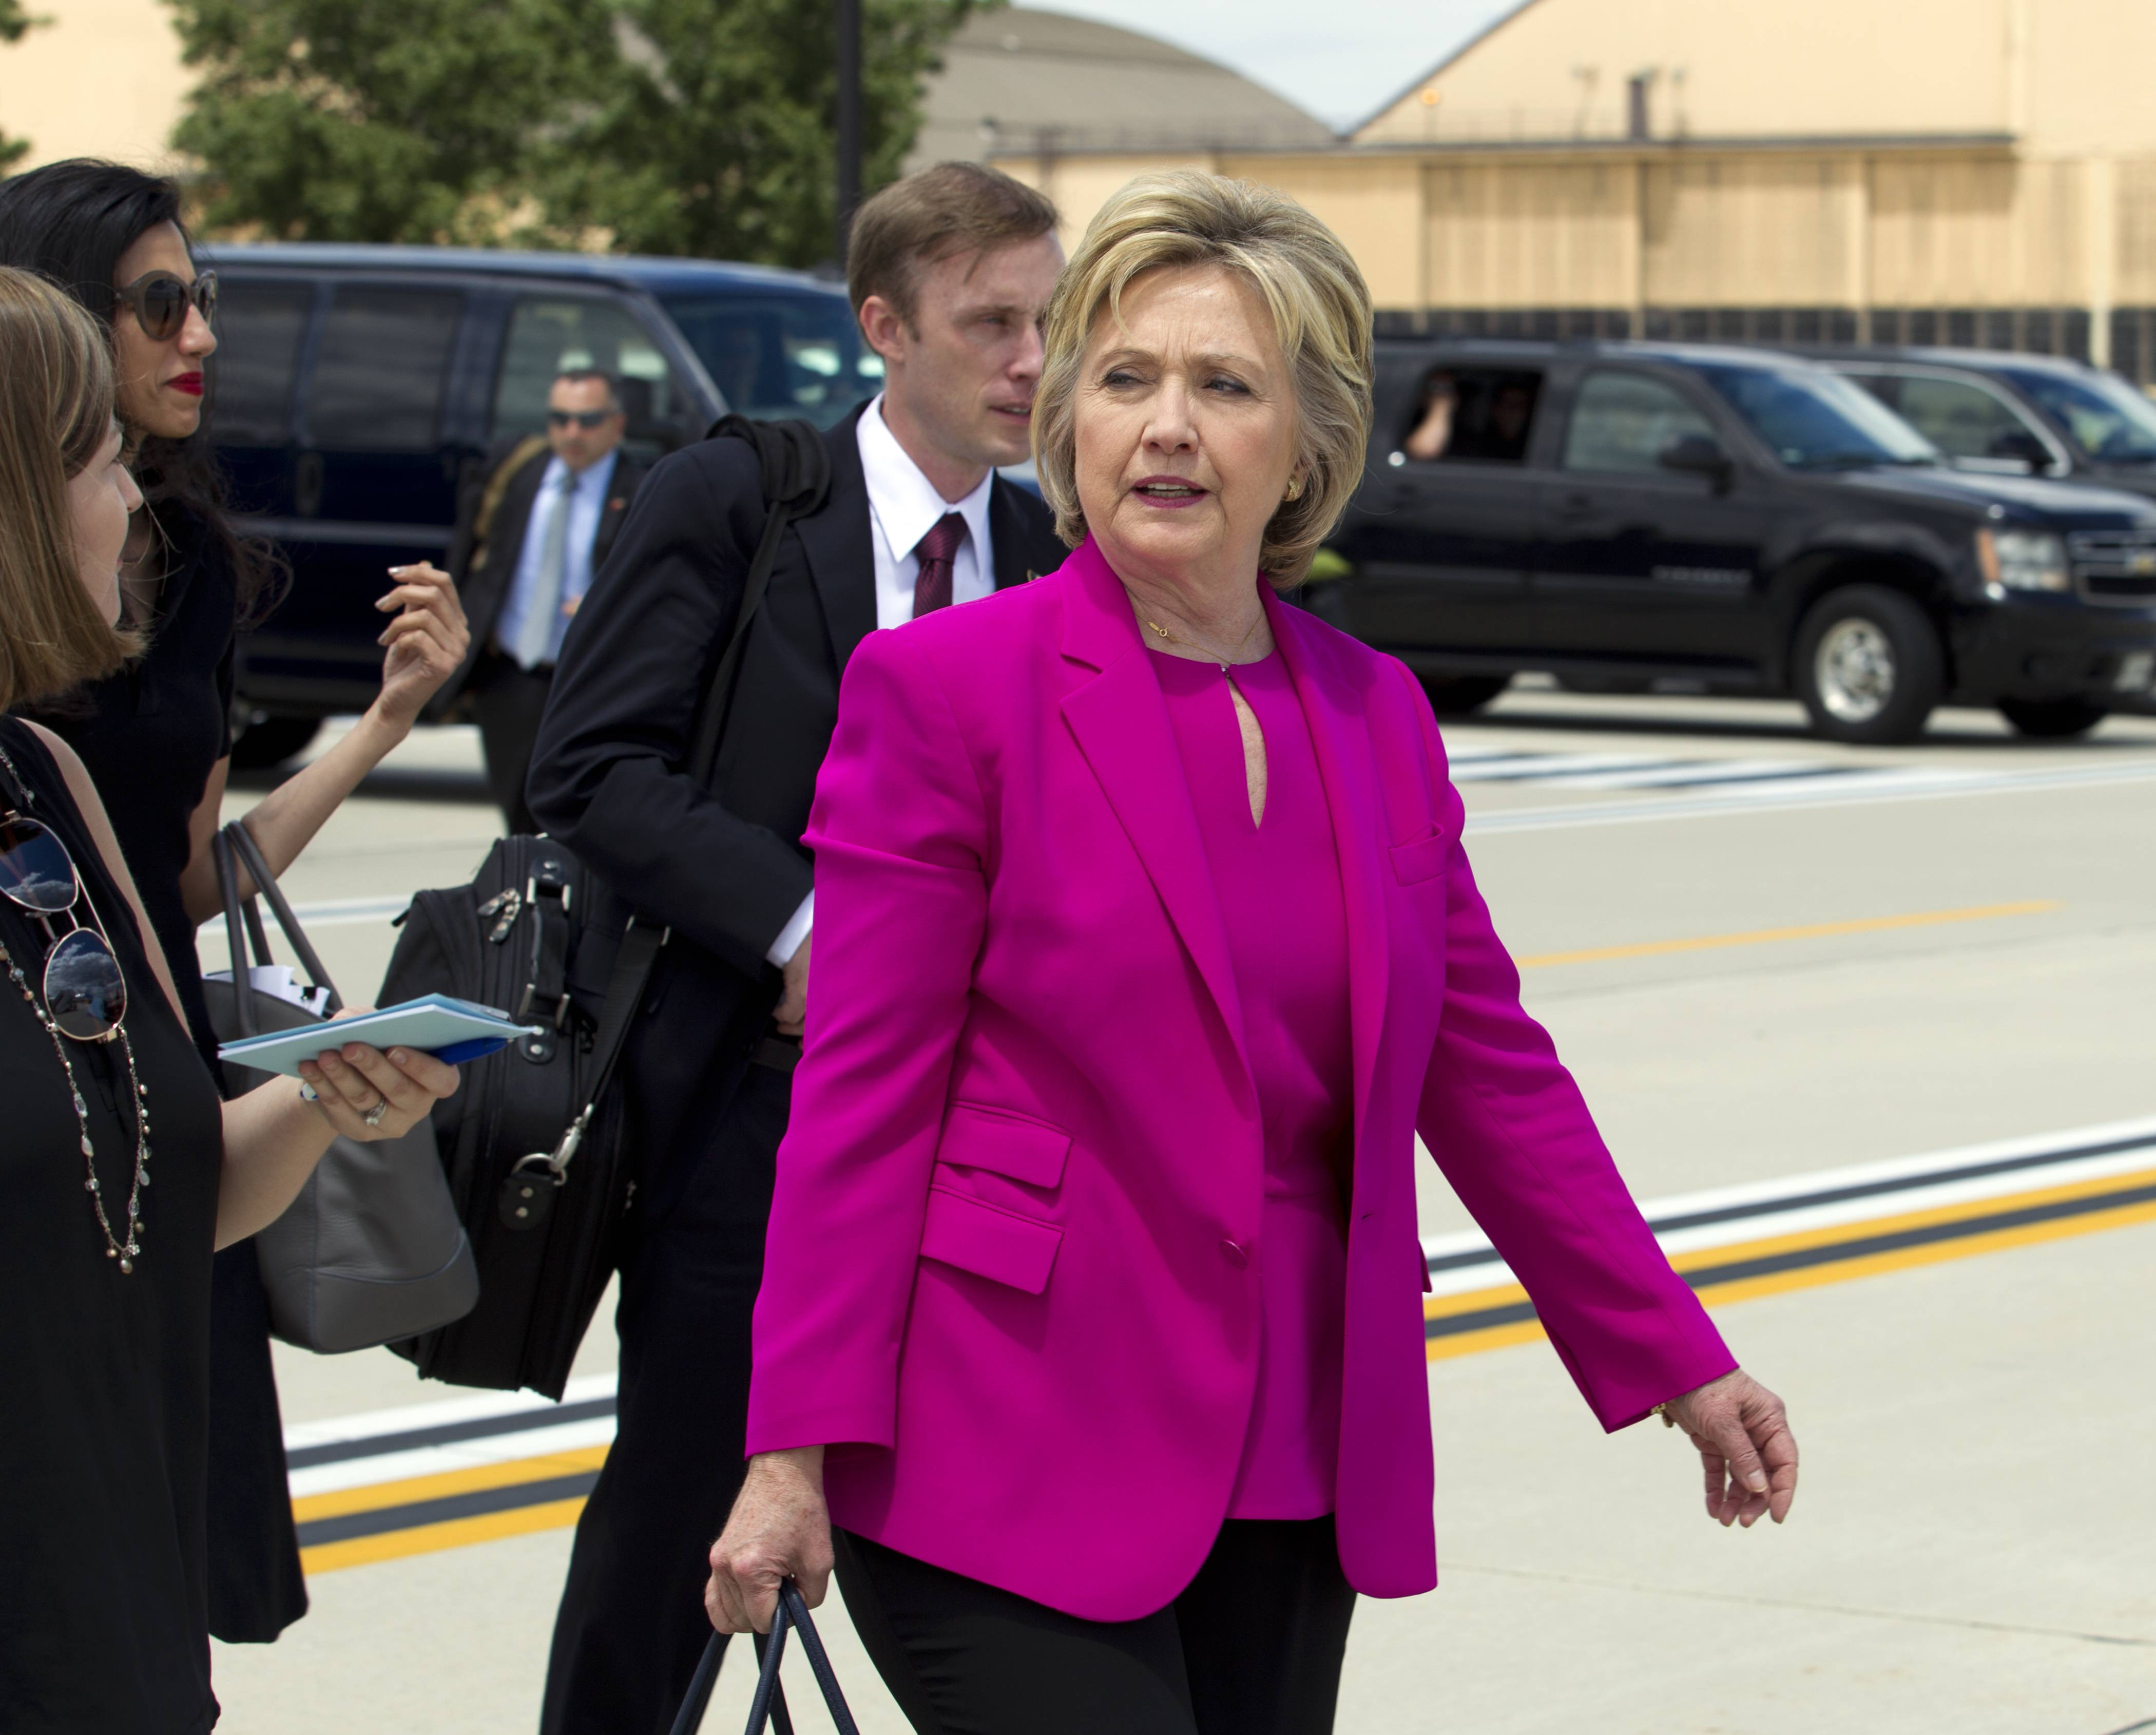 Democratic presidential candidate Hillary Clinton arrives to board Air Force One at Andrews Air Force Base, Md., Tuesday, to campaign with President Barack Obama.